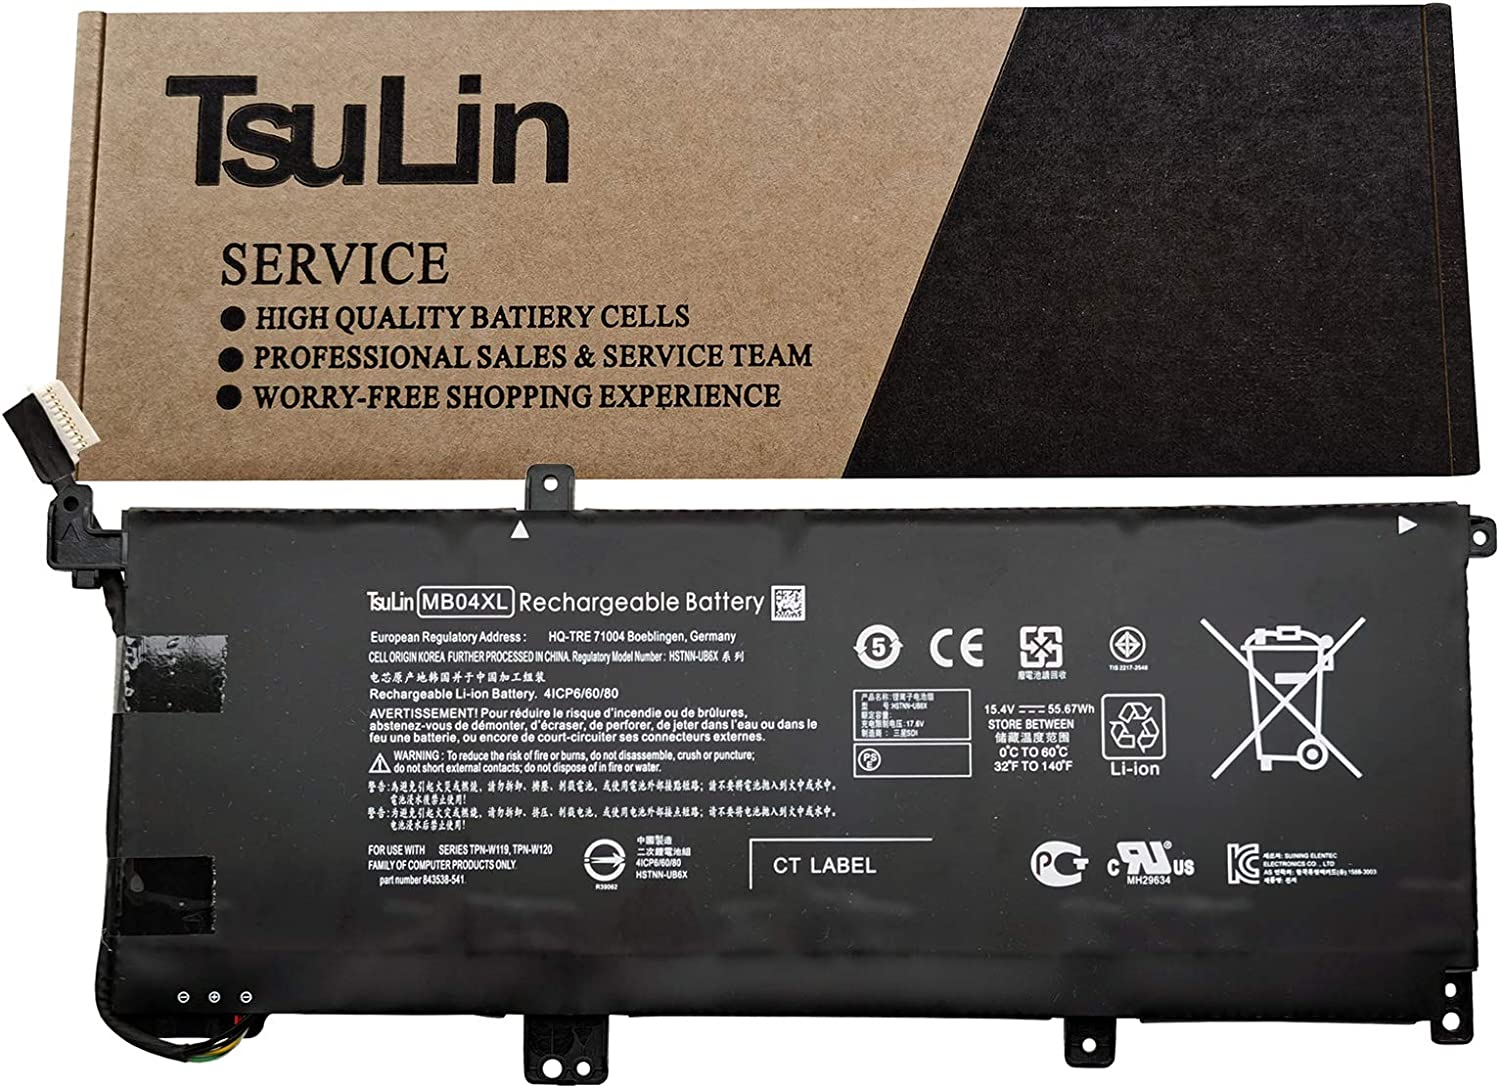 TsuLin MB04XL Laptop Battery Replacement for HP Envy X360 M6 PC 15 Convertible Series Notebook HSTNN-UB6X MBO4XL 844204-850 843538-541 15.4V 55.67Wh